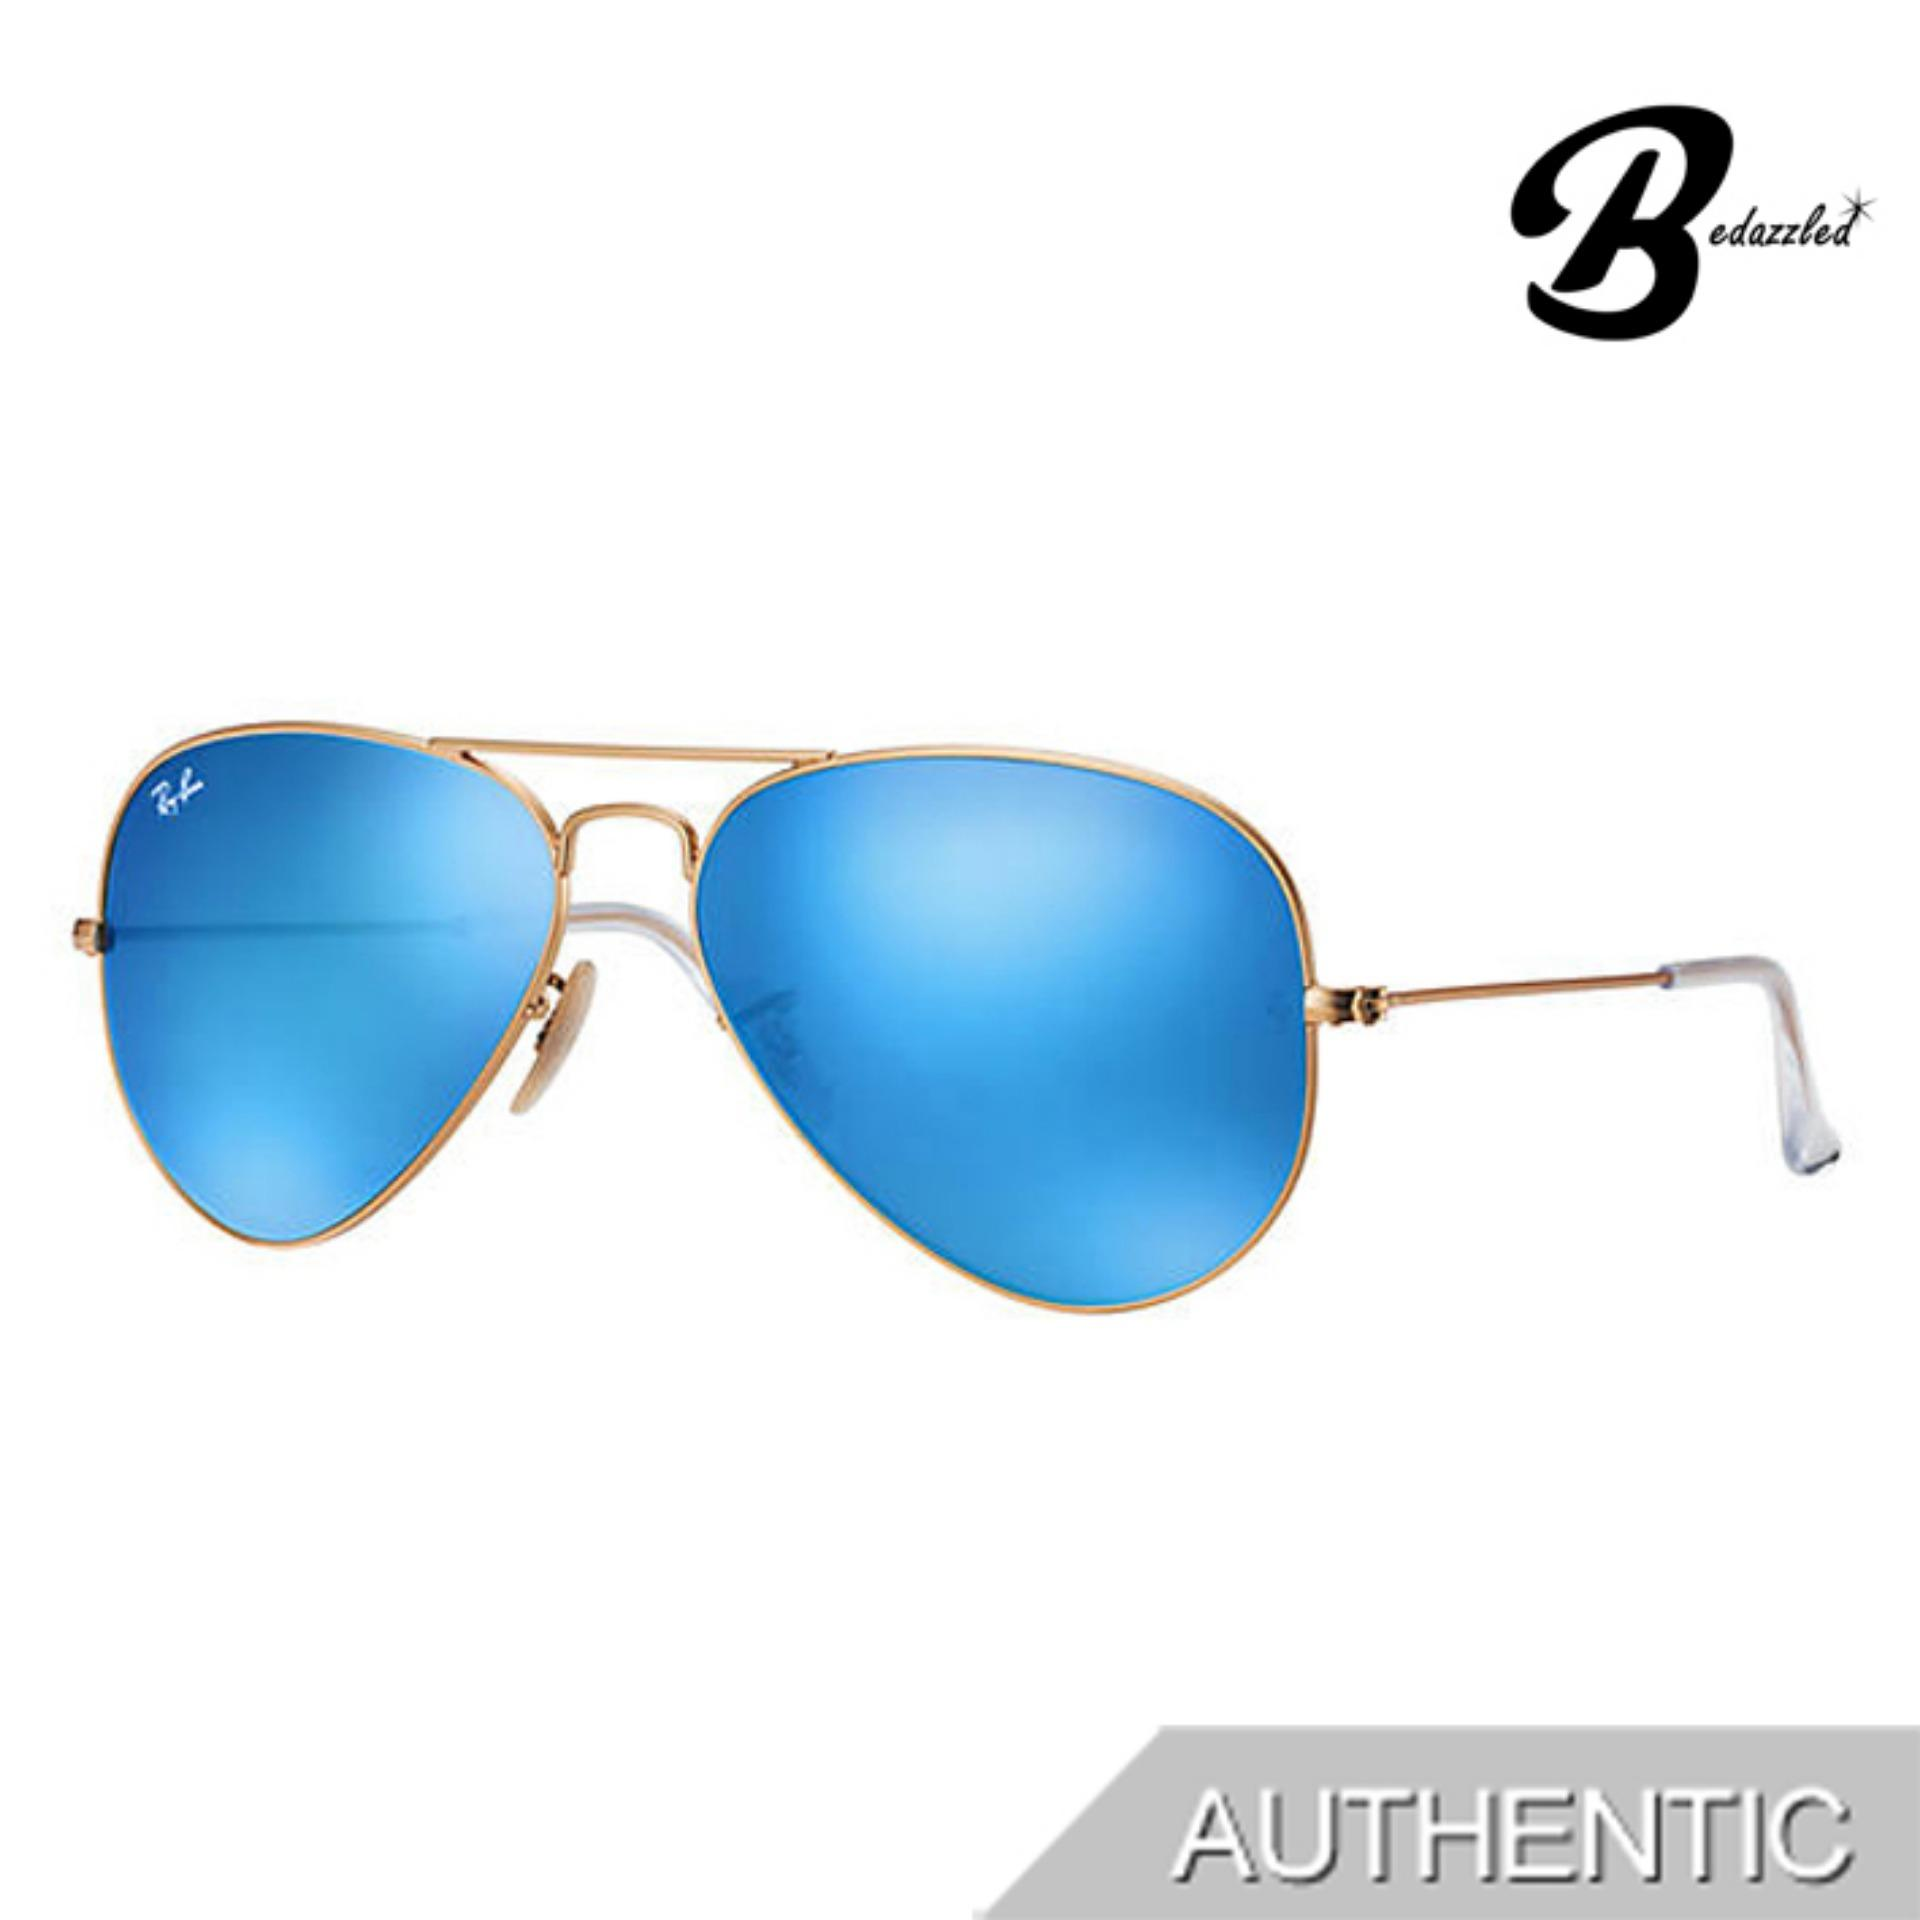 Ray-Ban Aviator Flash Lenses 0rb3025112/1758 By Bedazzled.